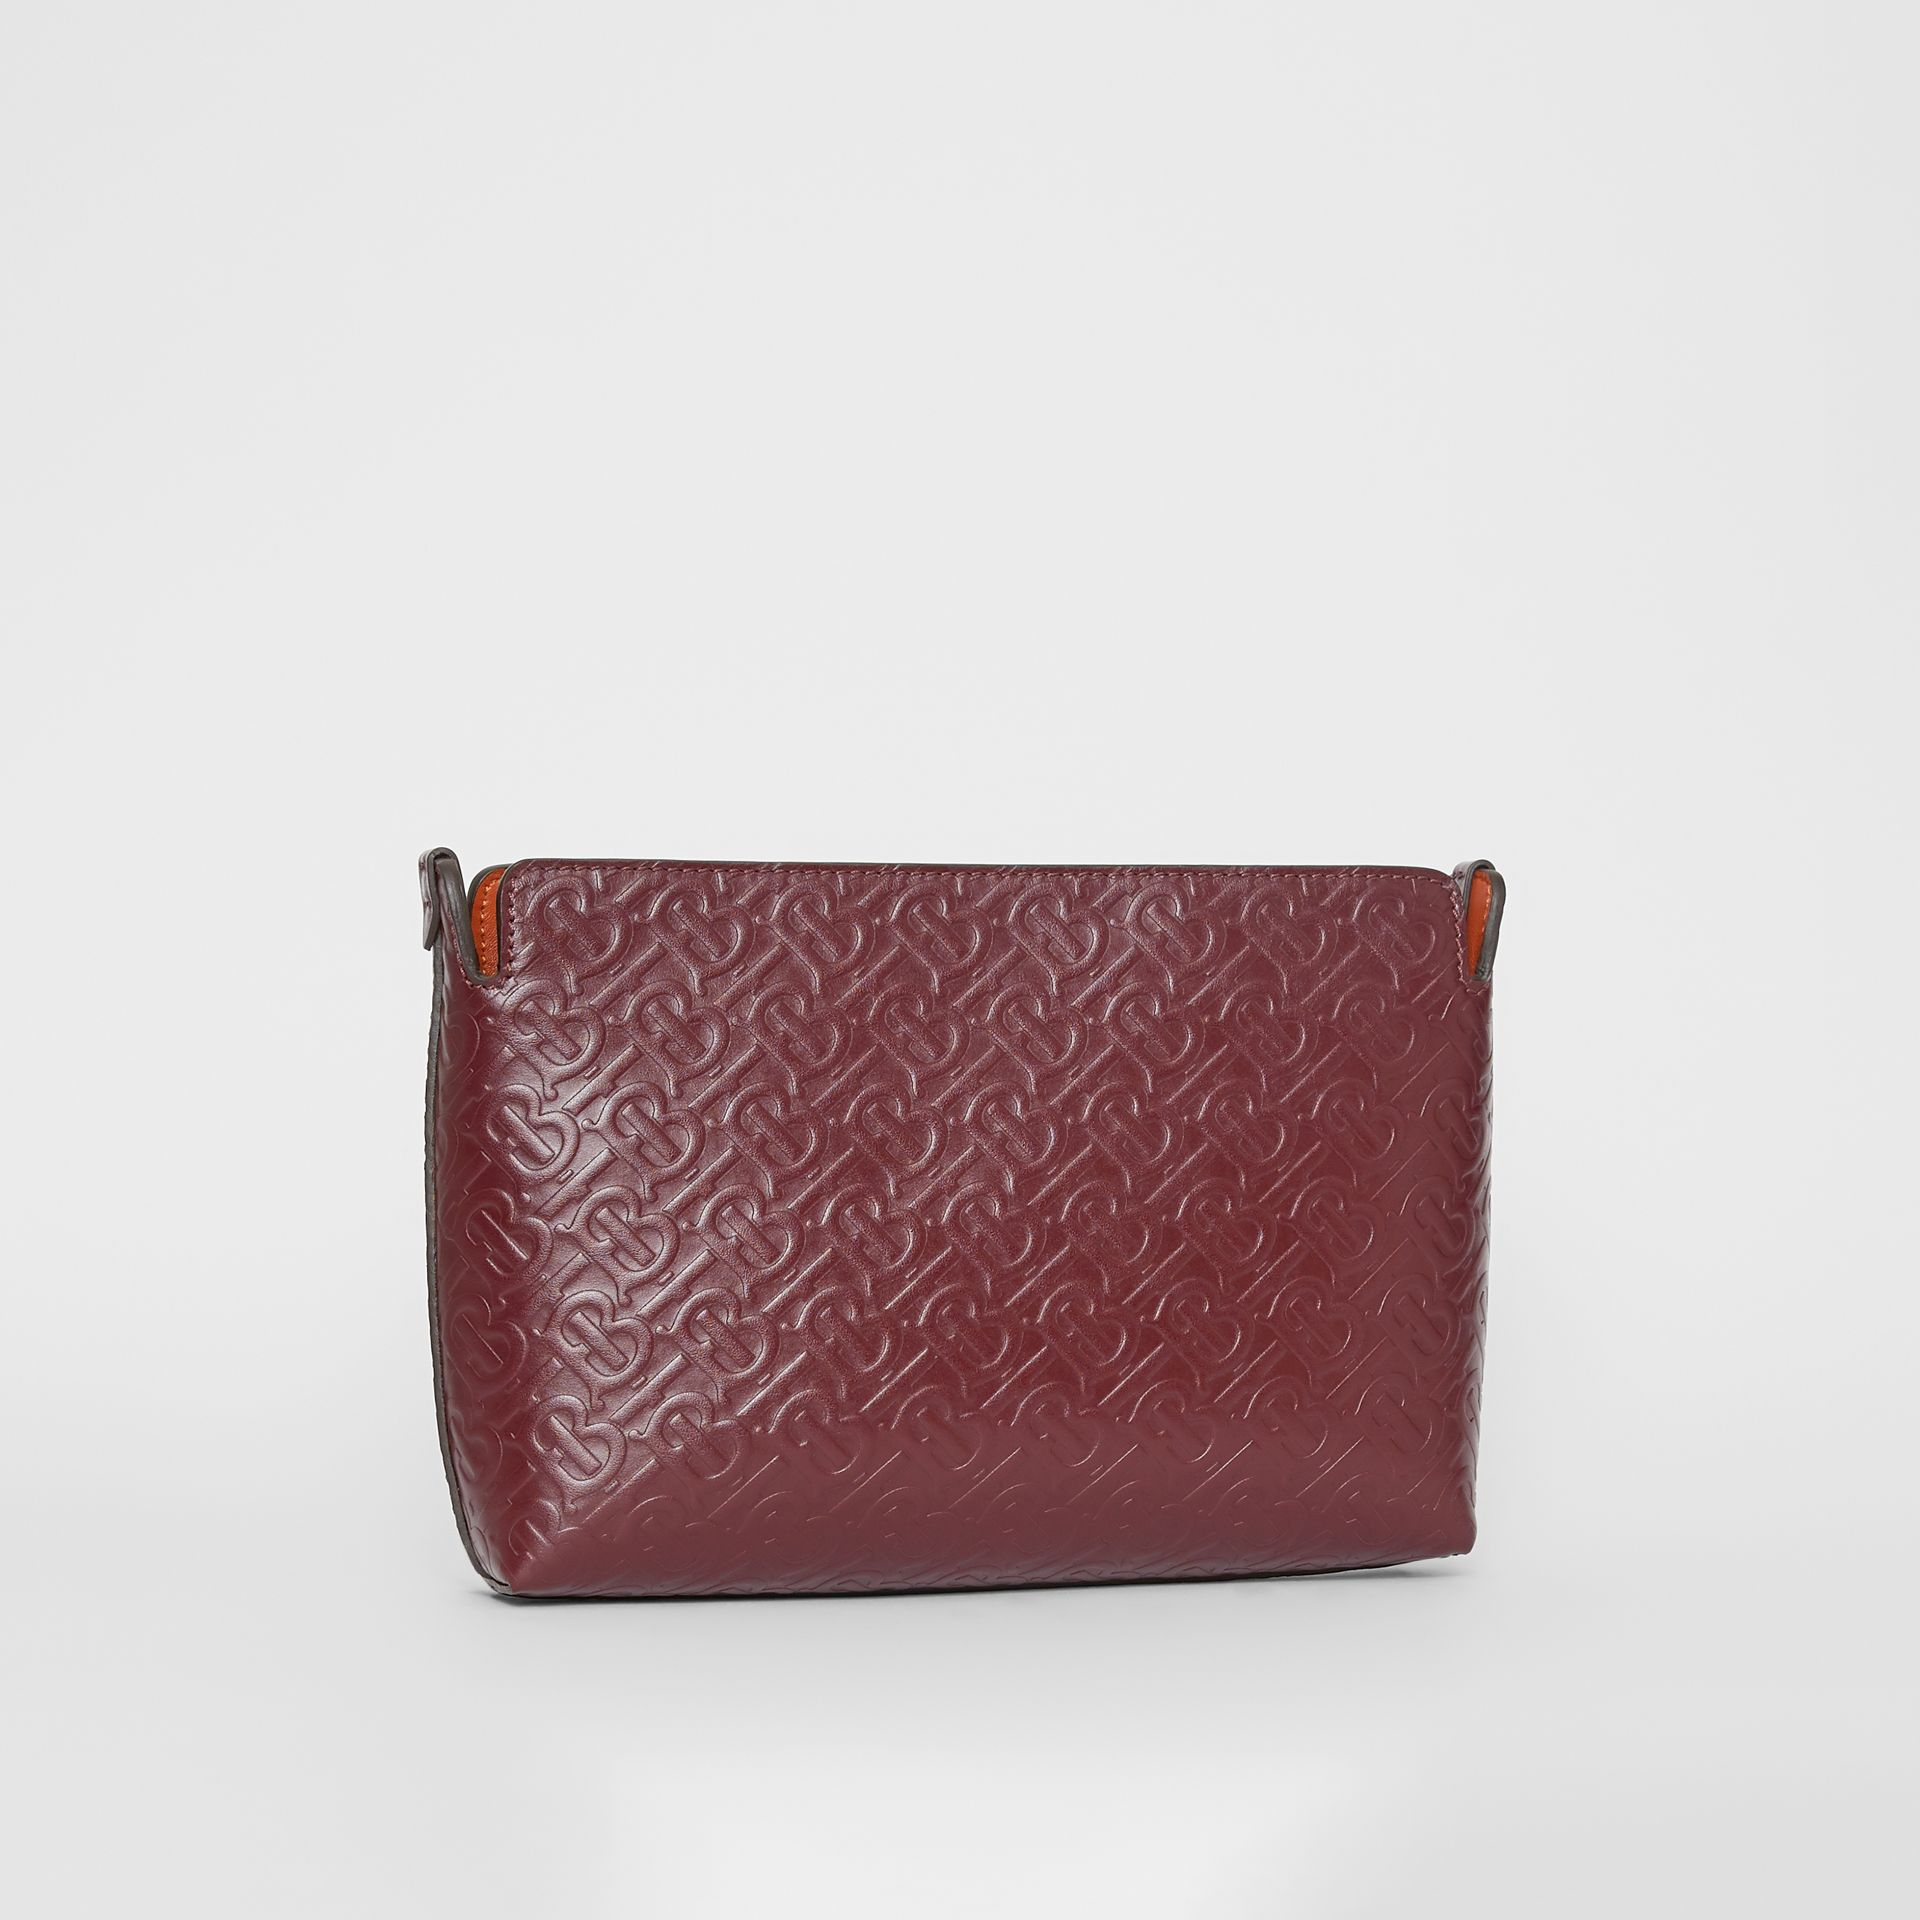 Medium Monogram Leather Clutch in Oxblood - Women | Burberry Australia - gallery image 3